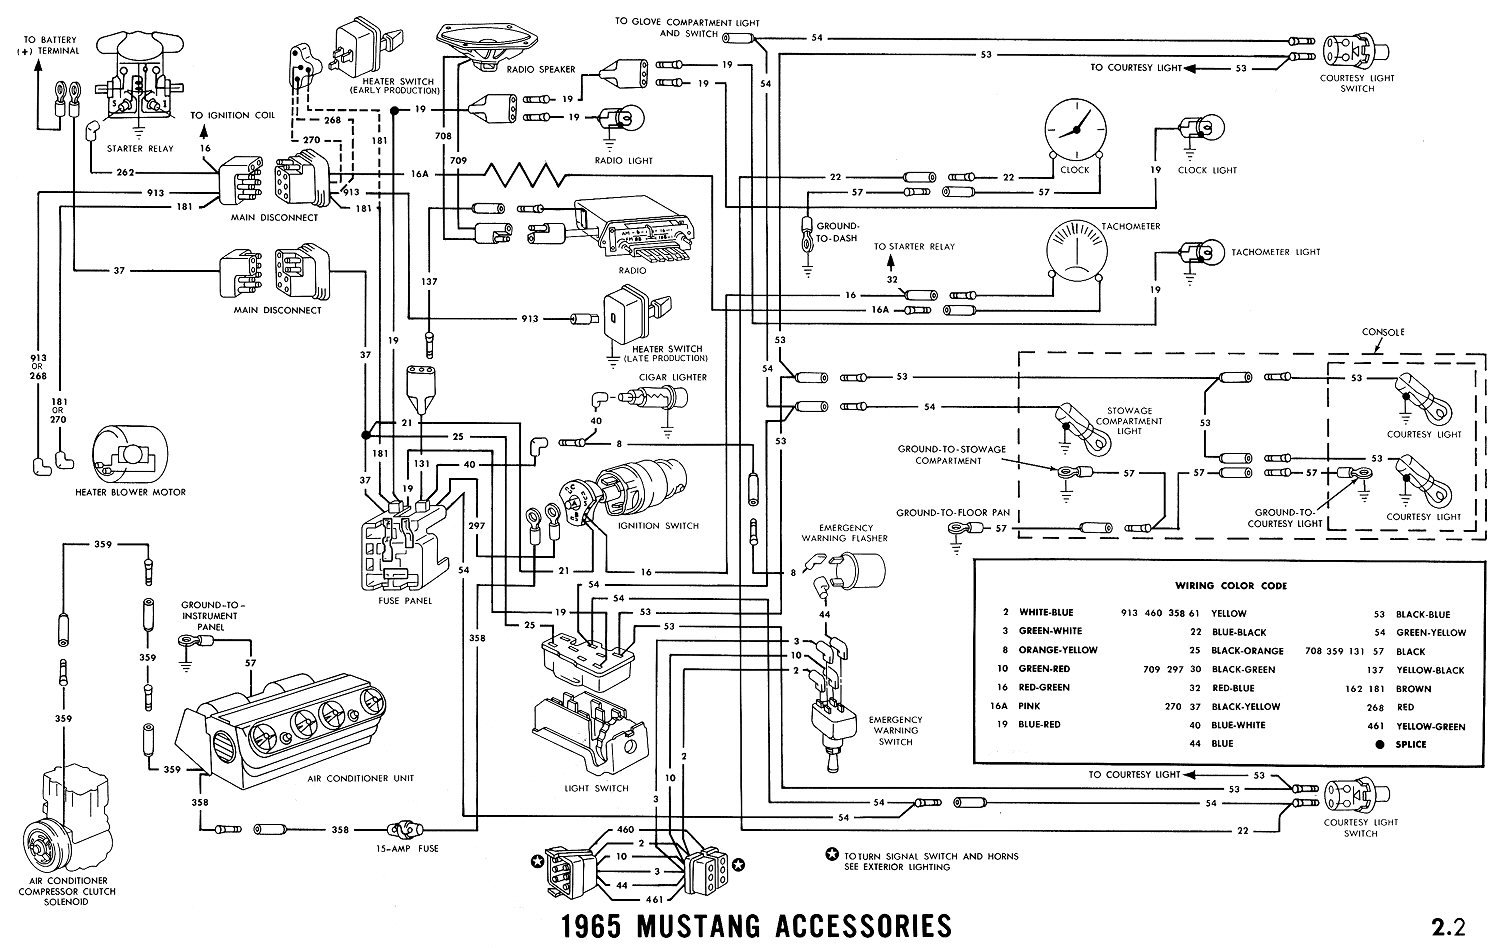 Wiring diagram 1966 mustang safety switch on wiring diagram for 1966 mustang readingrat net on 1966 mustang circuit breaker on 1966 mustang torque specs